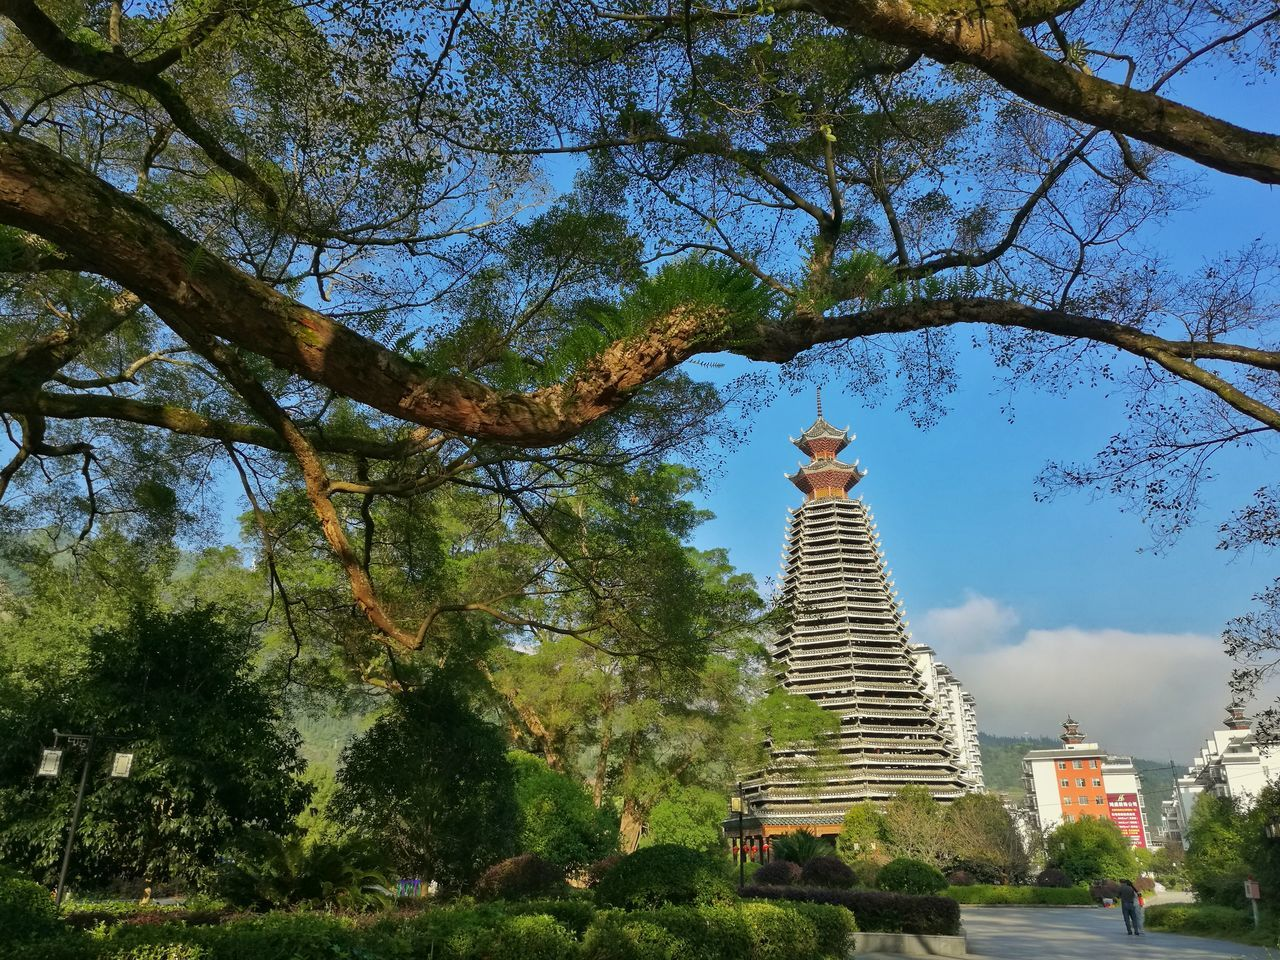 tree, religion, spirituality, architecture, travel destinations, place of worship, built structure, pagoda, low angle view, history, travel, tourism, building exterior, ancient, sky, nature, day, no people, outdoors, growth, statue, skyscraper, beauty in nature, ancient civilization